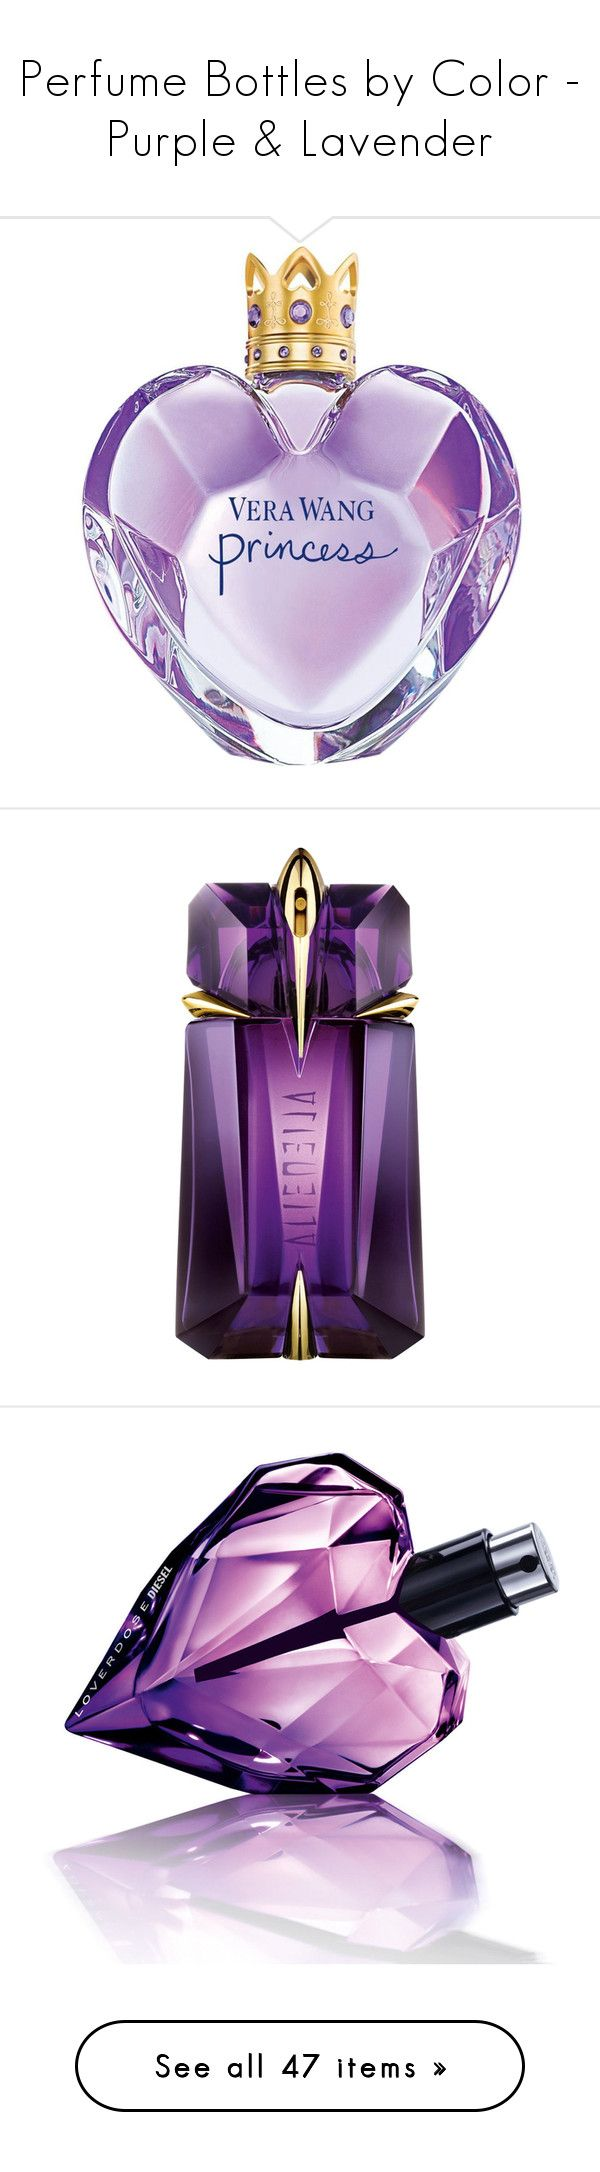 """""""Perfume Bottles by Color - Purple & Lavender"""" by helenehrenhofer ❤ liked on Polyvore featuring beauty products, fragrance, perfume, beauty, makeup, purple, filler, blossom perfume, eau de toilette fragrance and fruity perfume"""